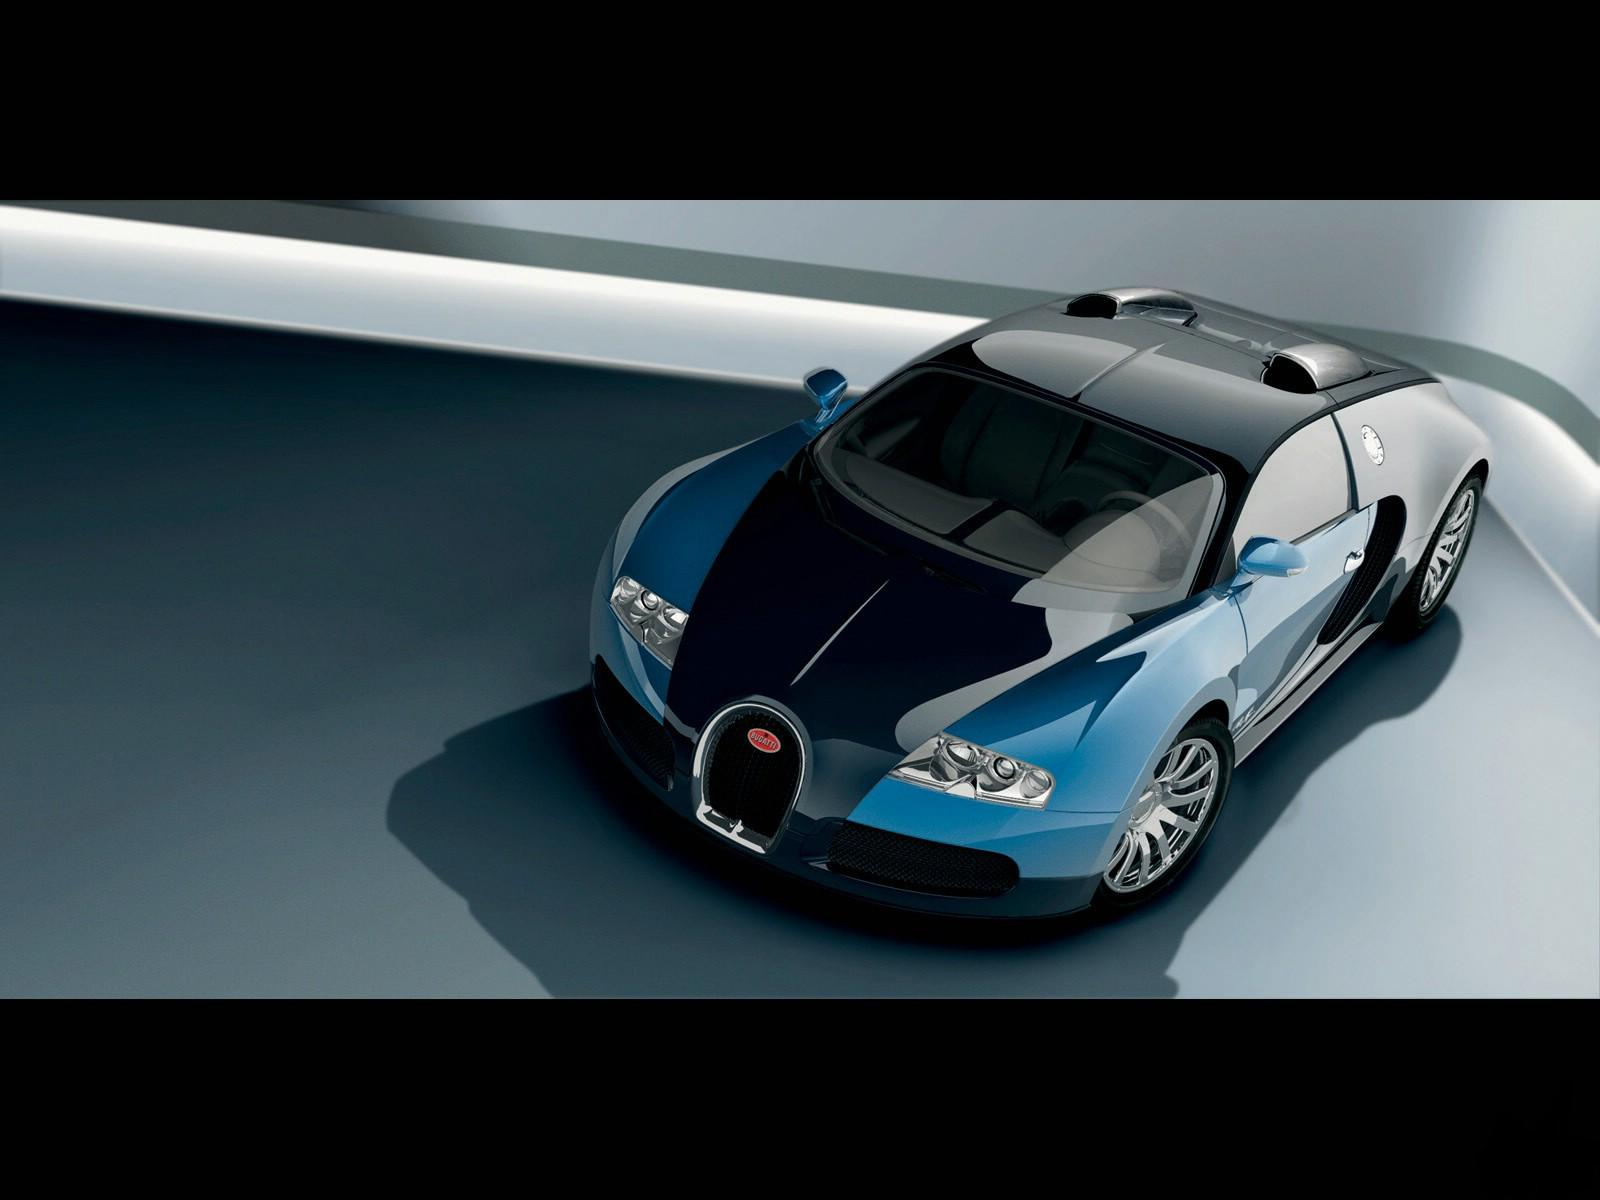 buggati veyron cool desktop - photo #10